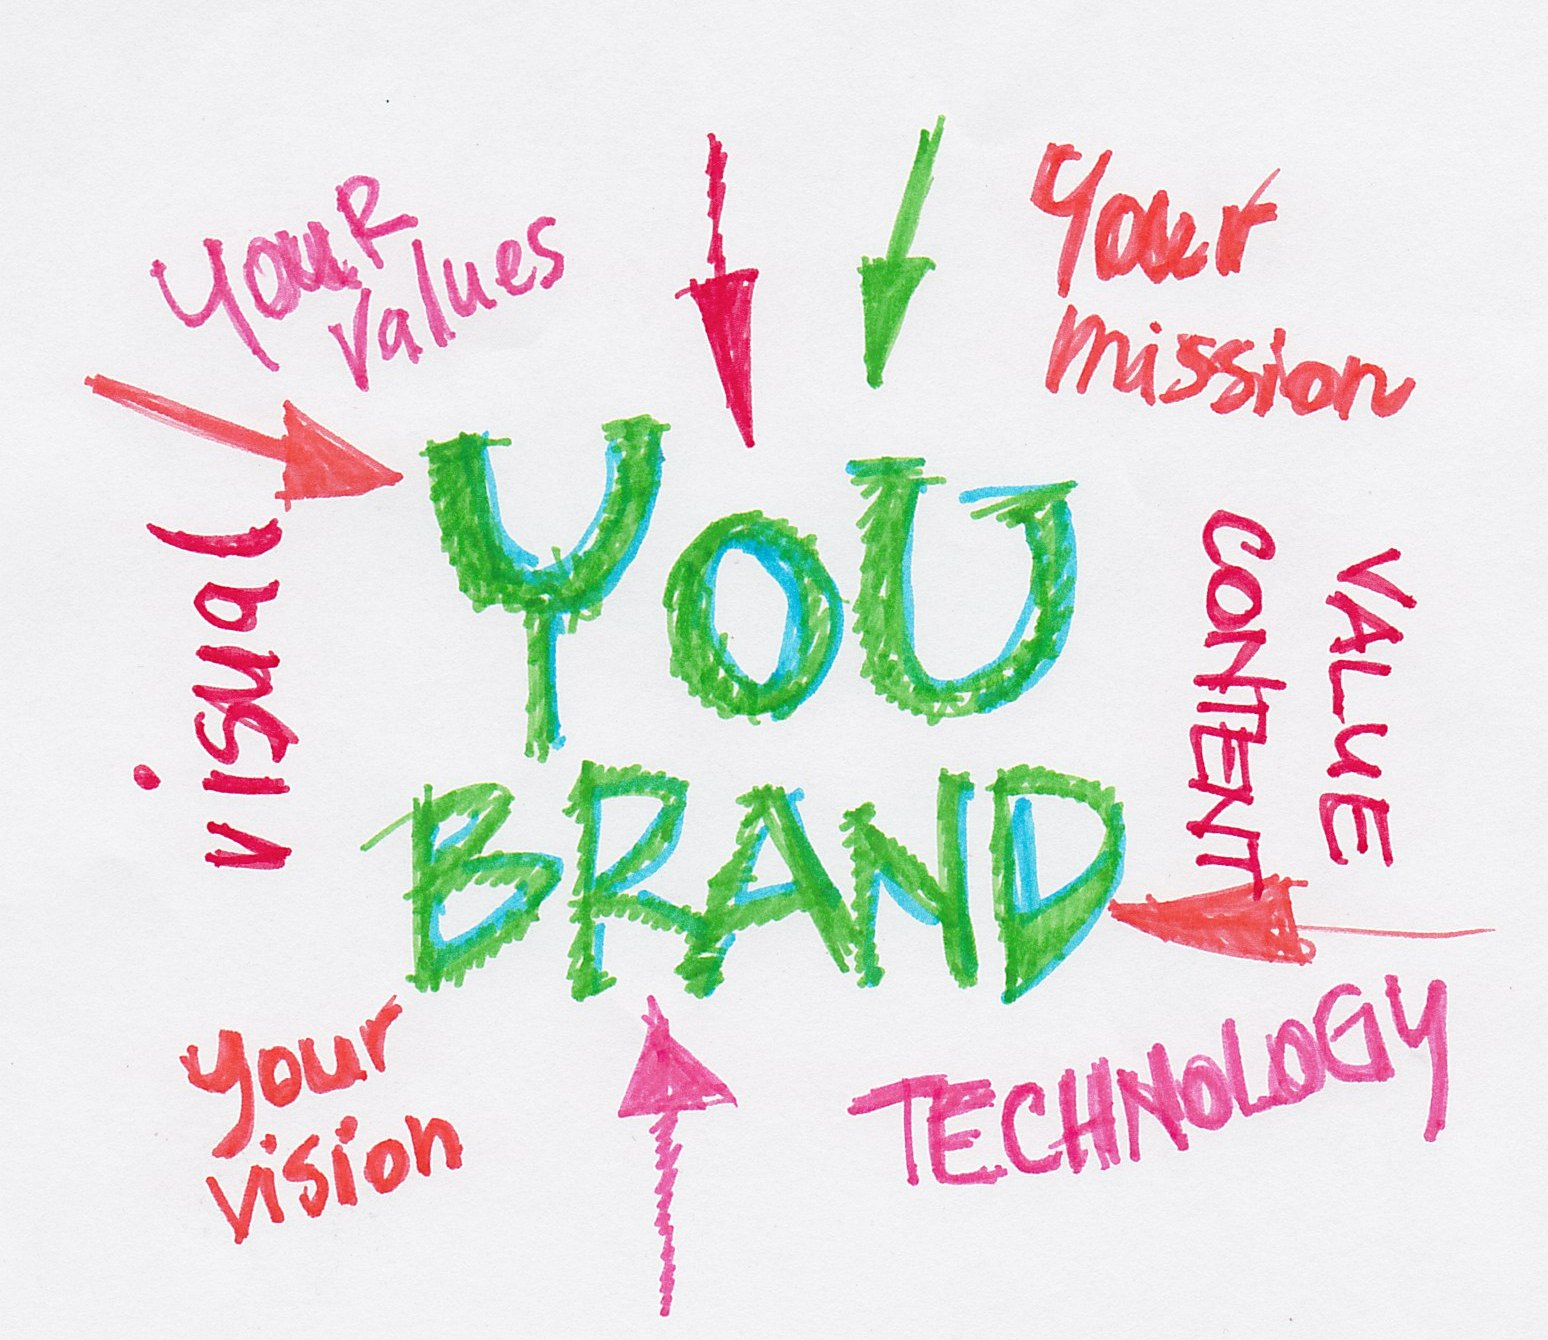 you brand values vision mission technology